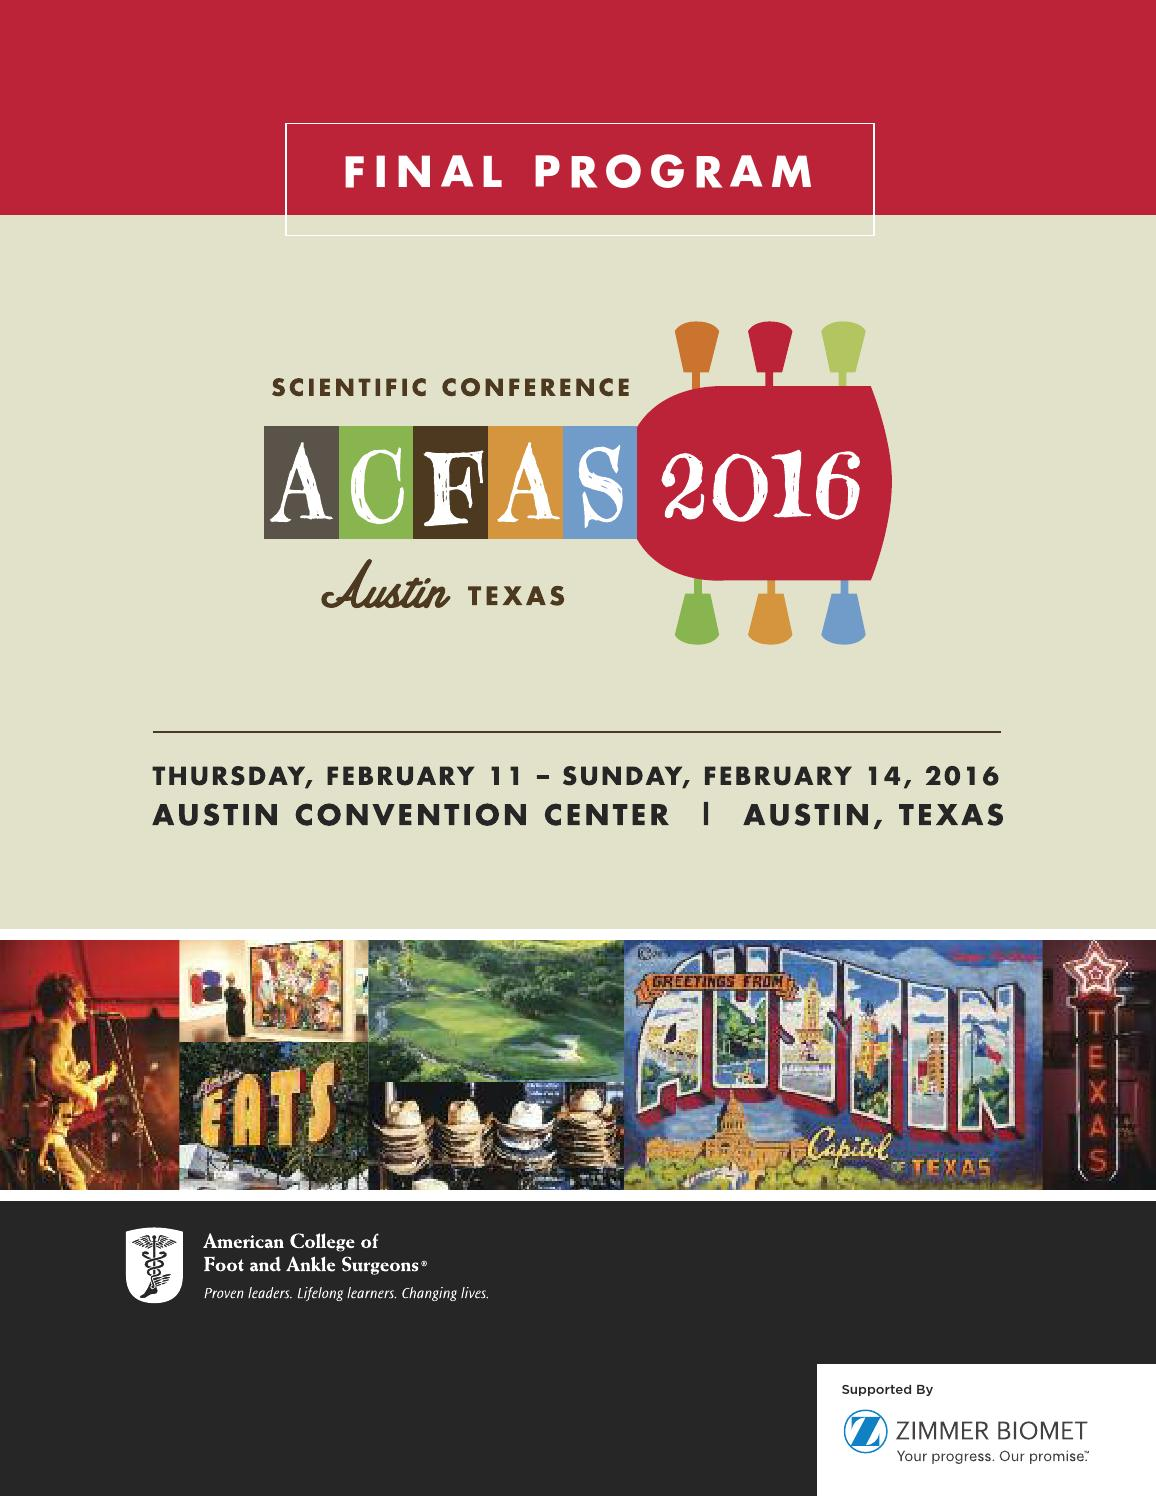 2016 acfas annual scientific conference program by acfas issuu fandeluxe Images